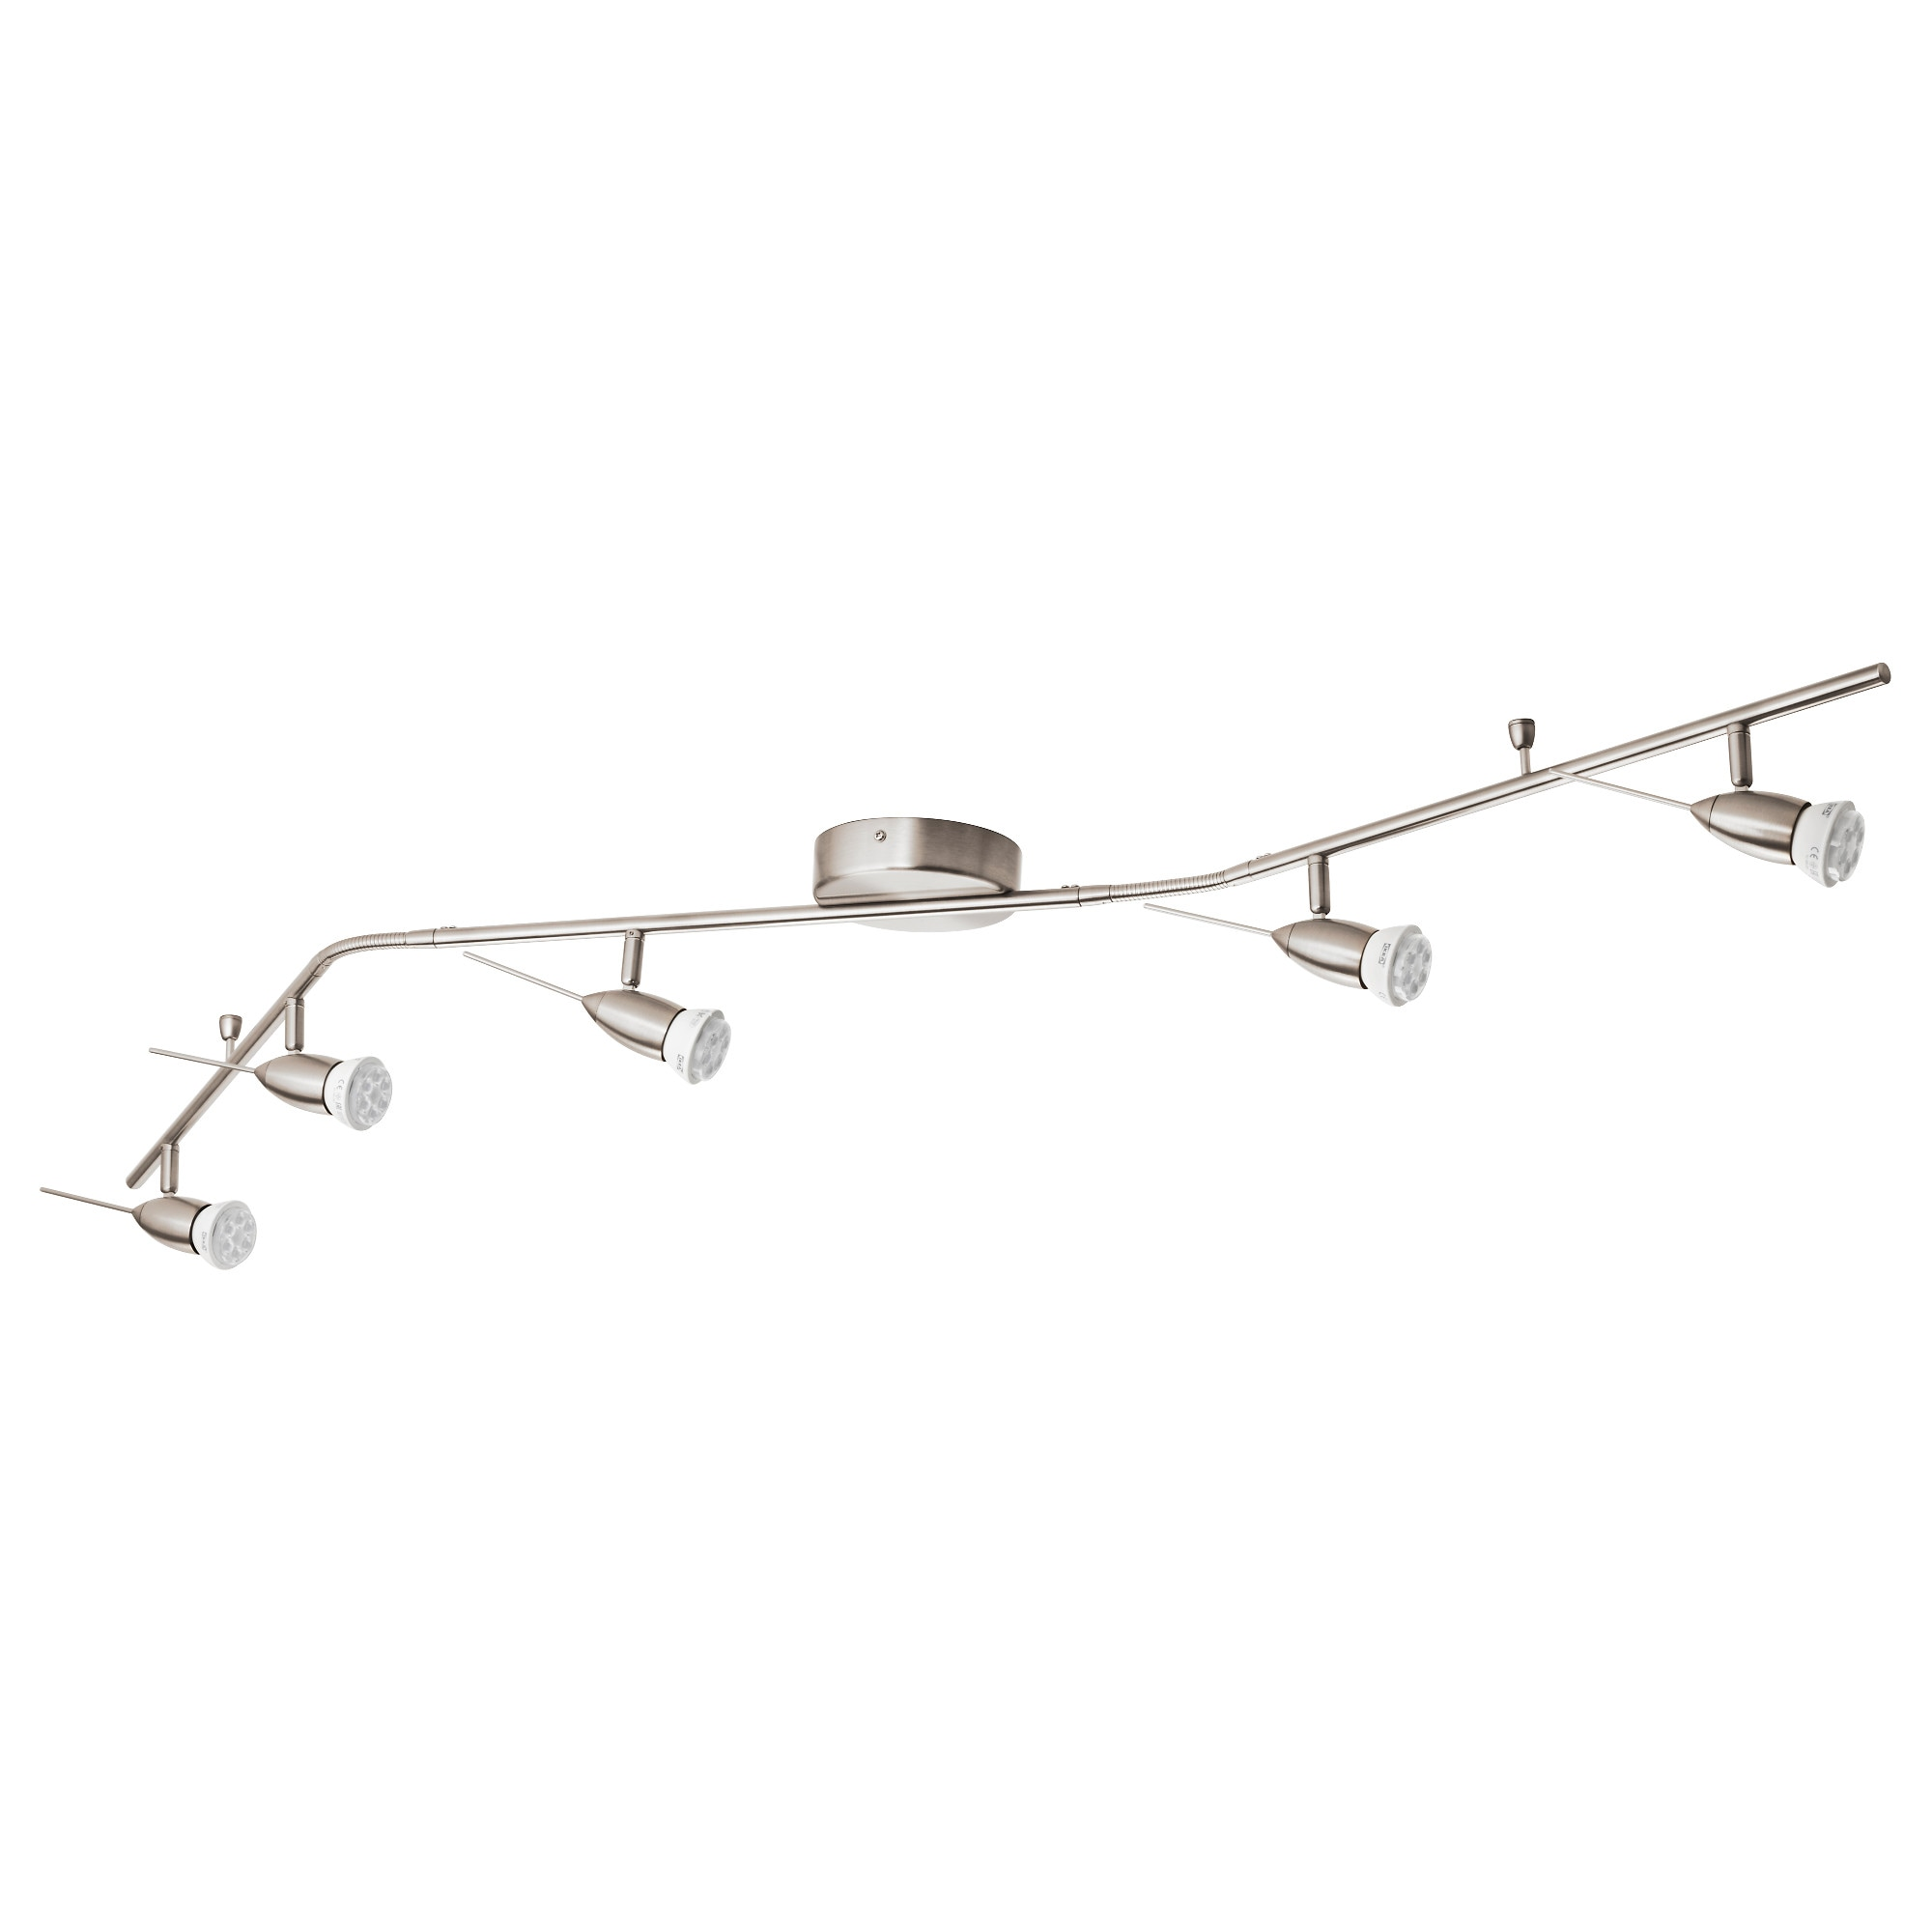 husinge ceiling track 5 spots nickel plated length 63 length ceiling track lighting